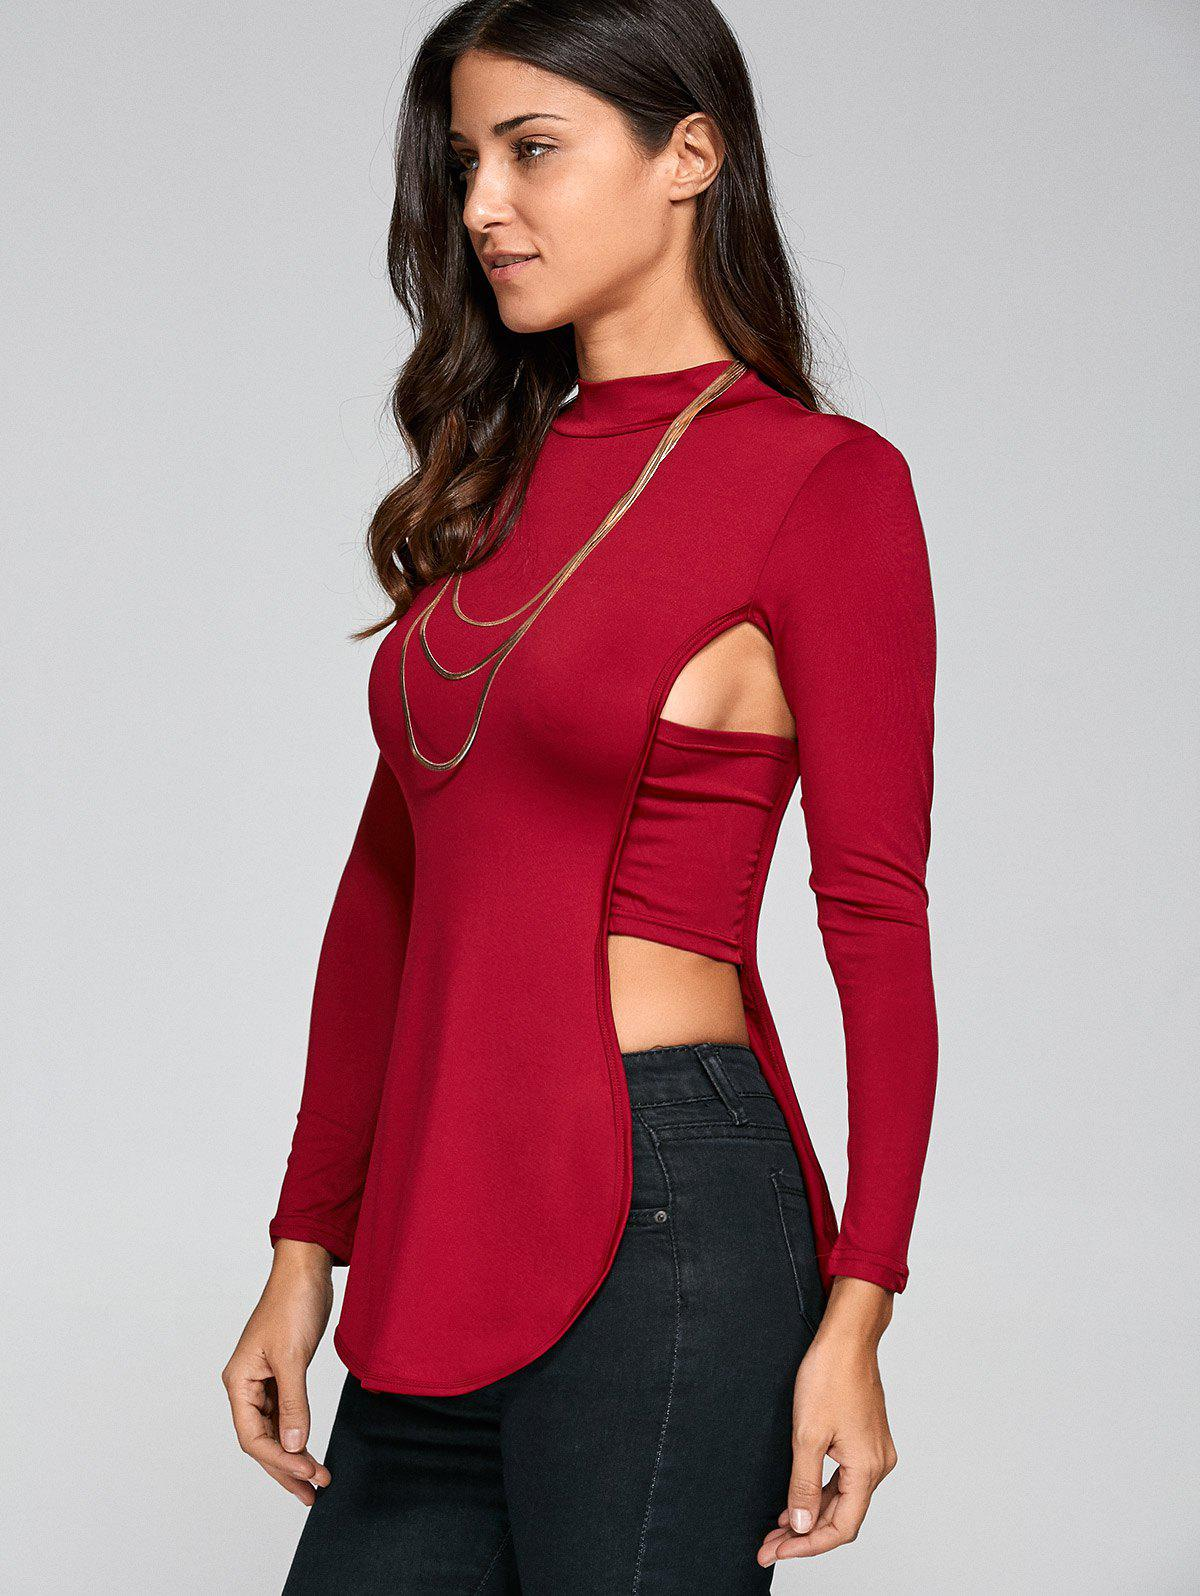 Long Sleeve Cut Out Backless T-Shirt - WINE RED XL